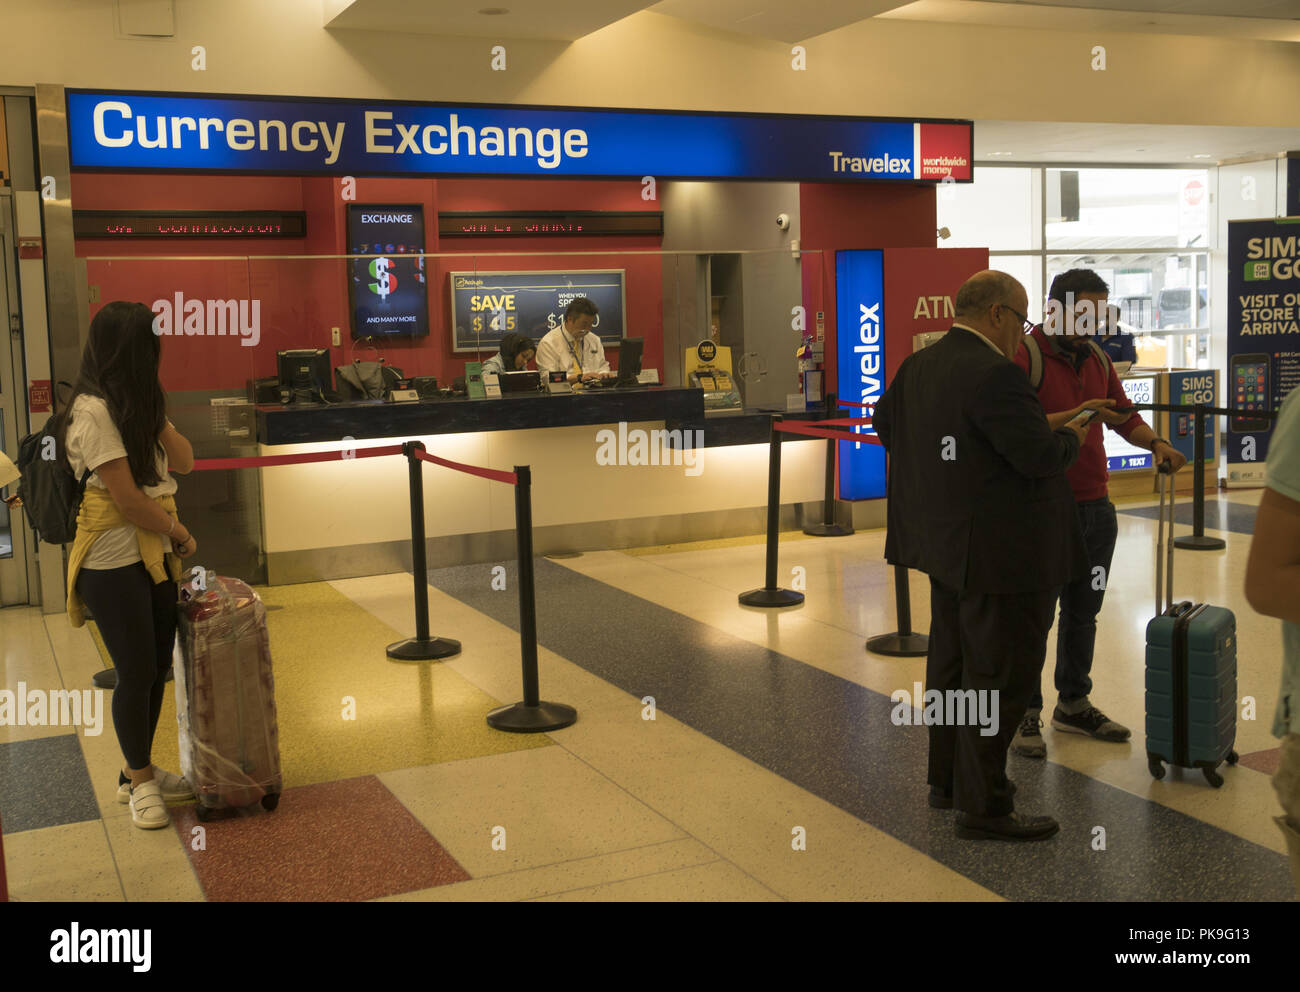 Currency exchange at jfk airport new york city where foreign